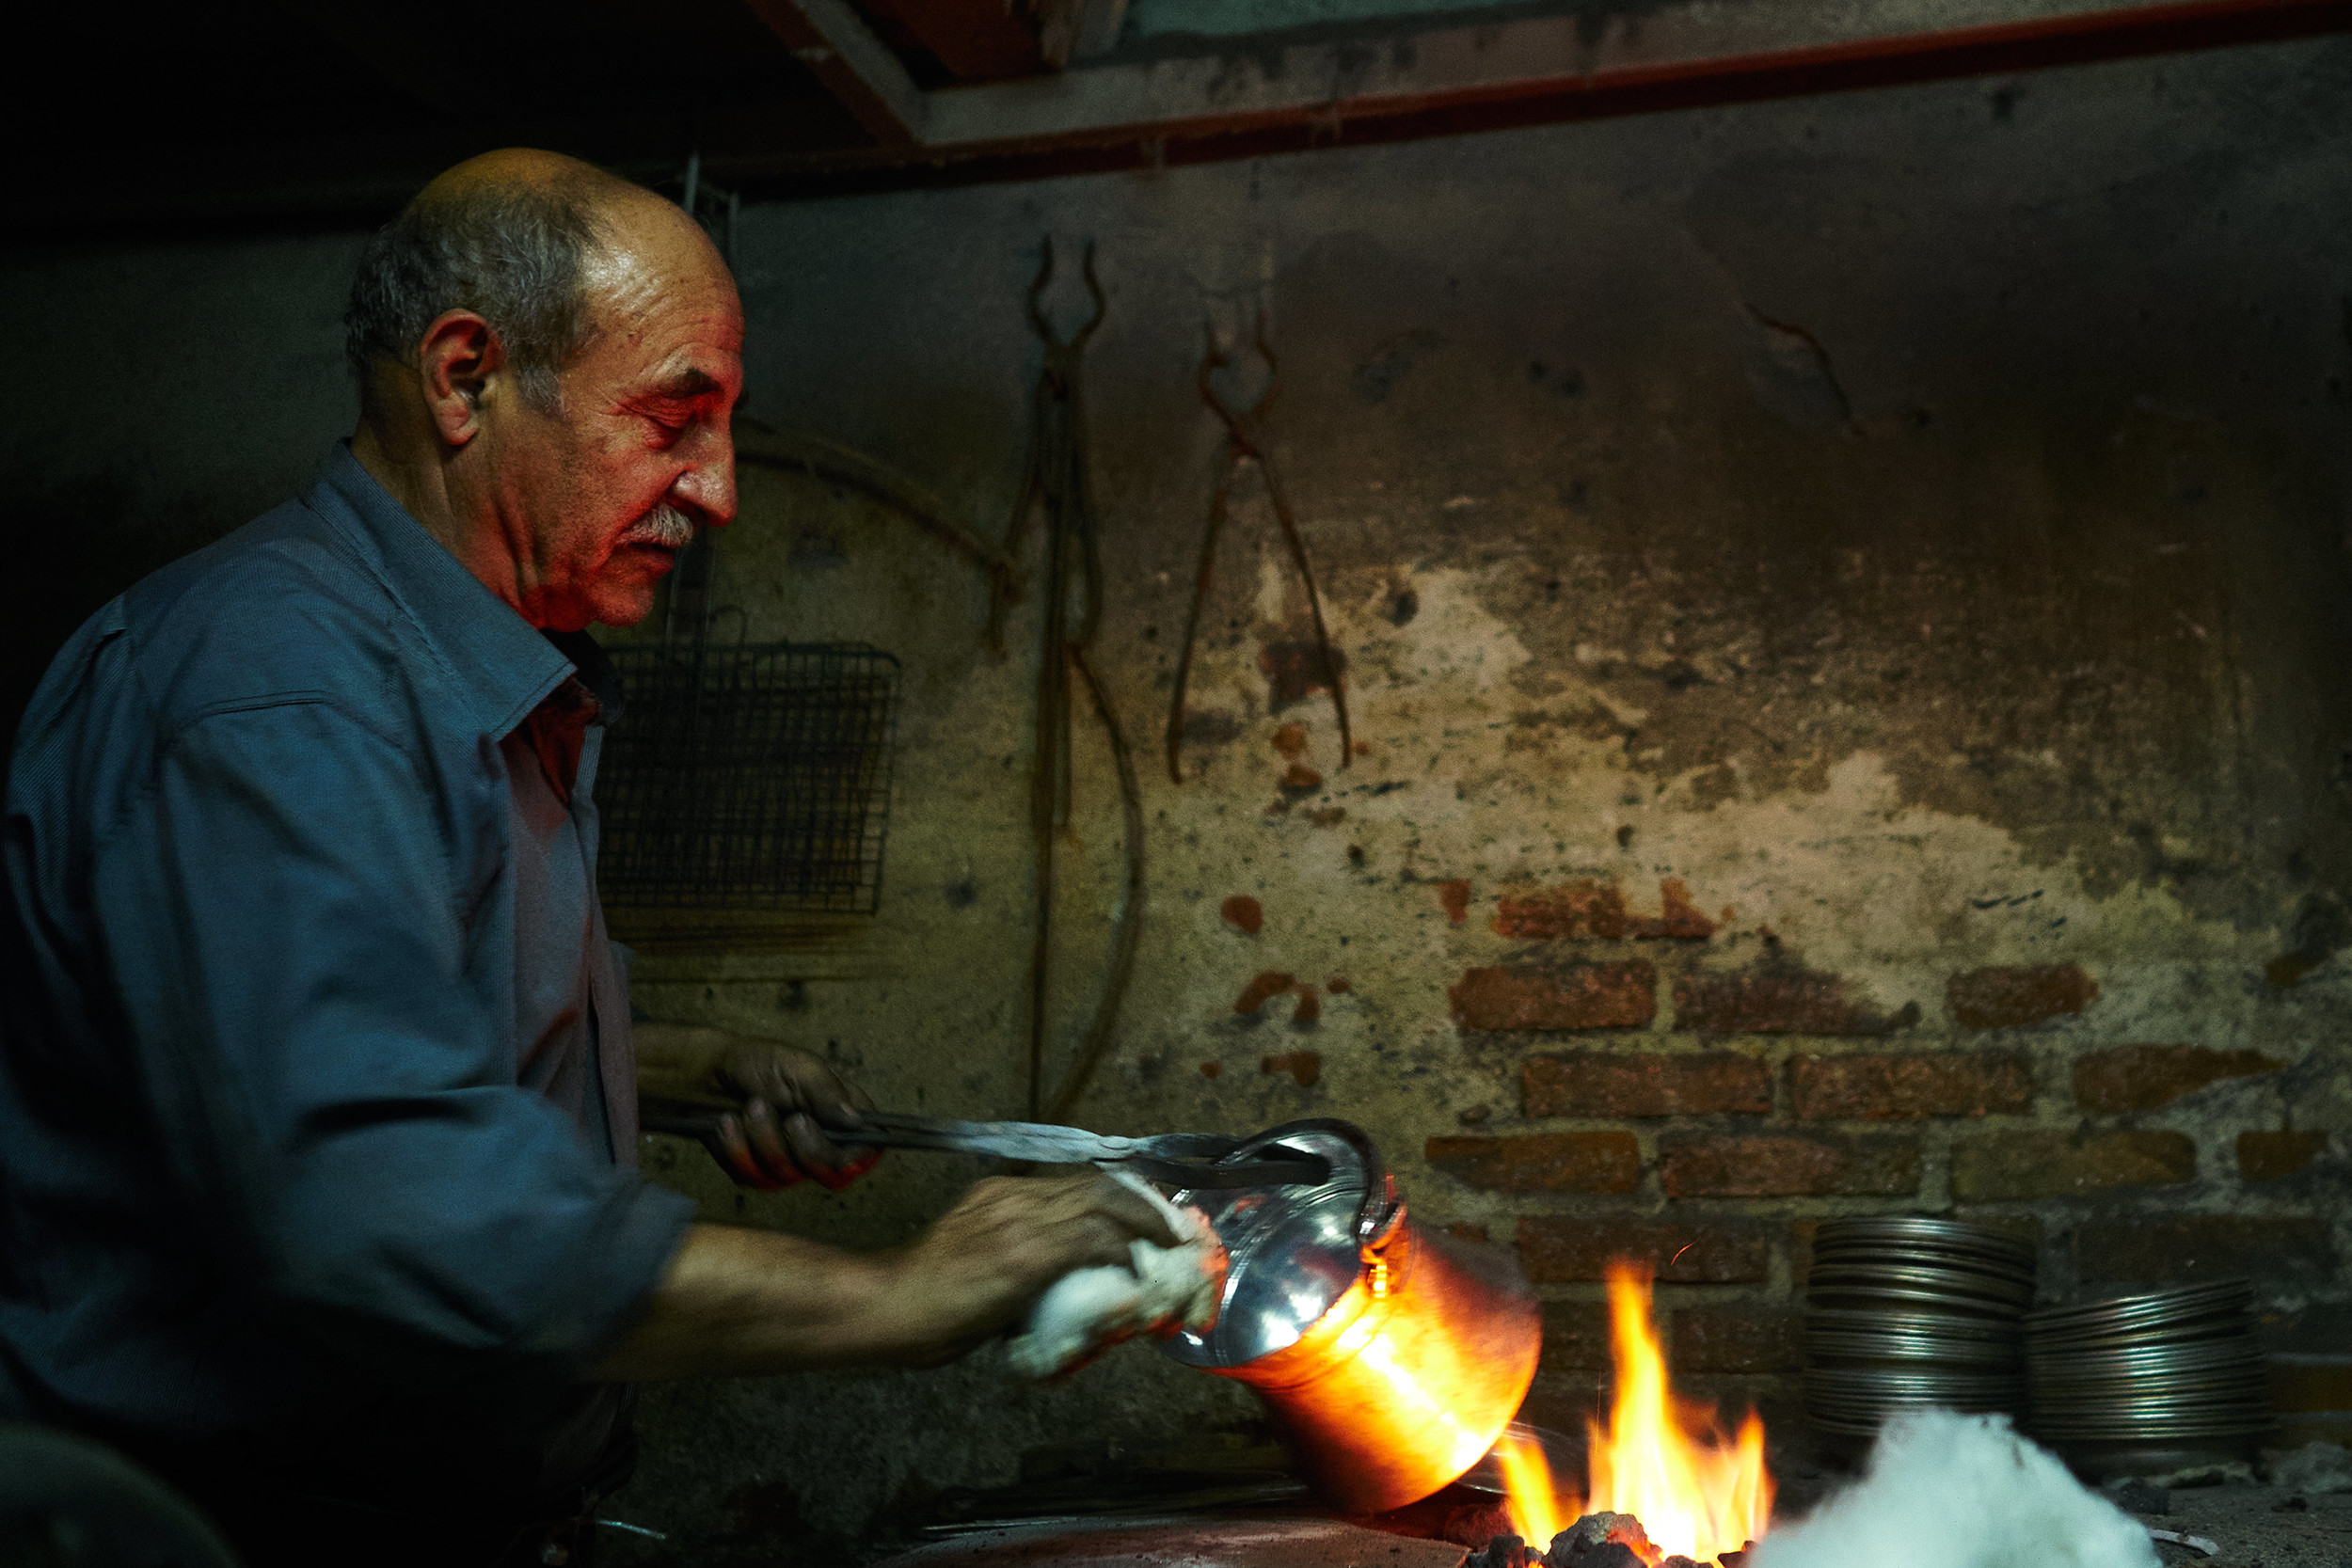 Man working on a metal pot, Malatya, Turkey